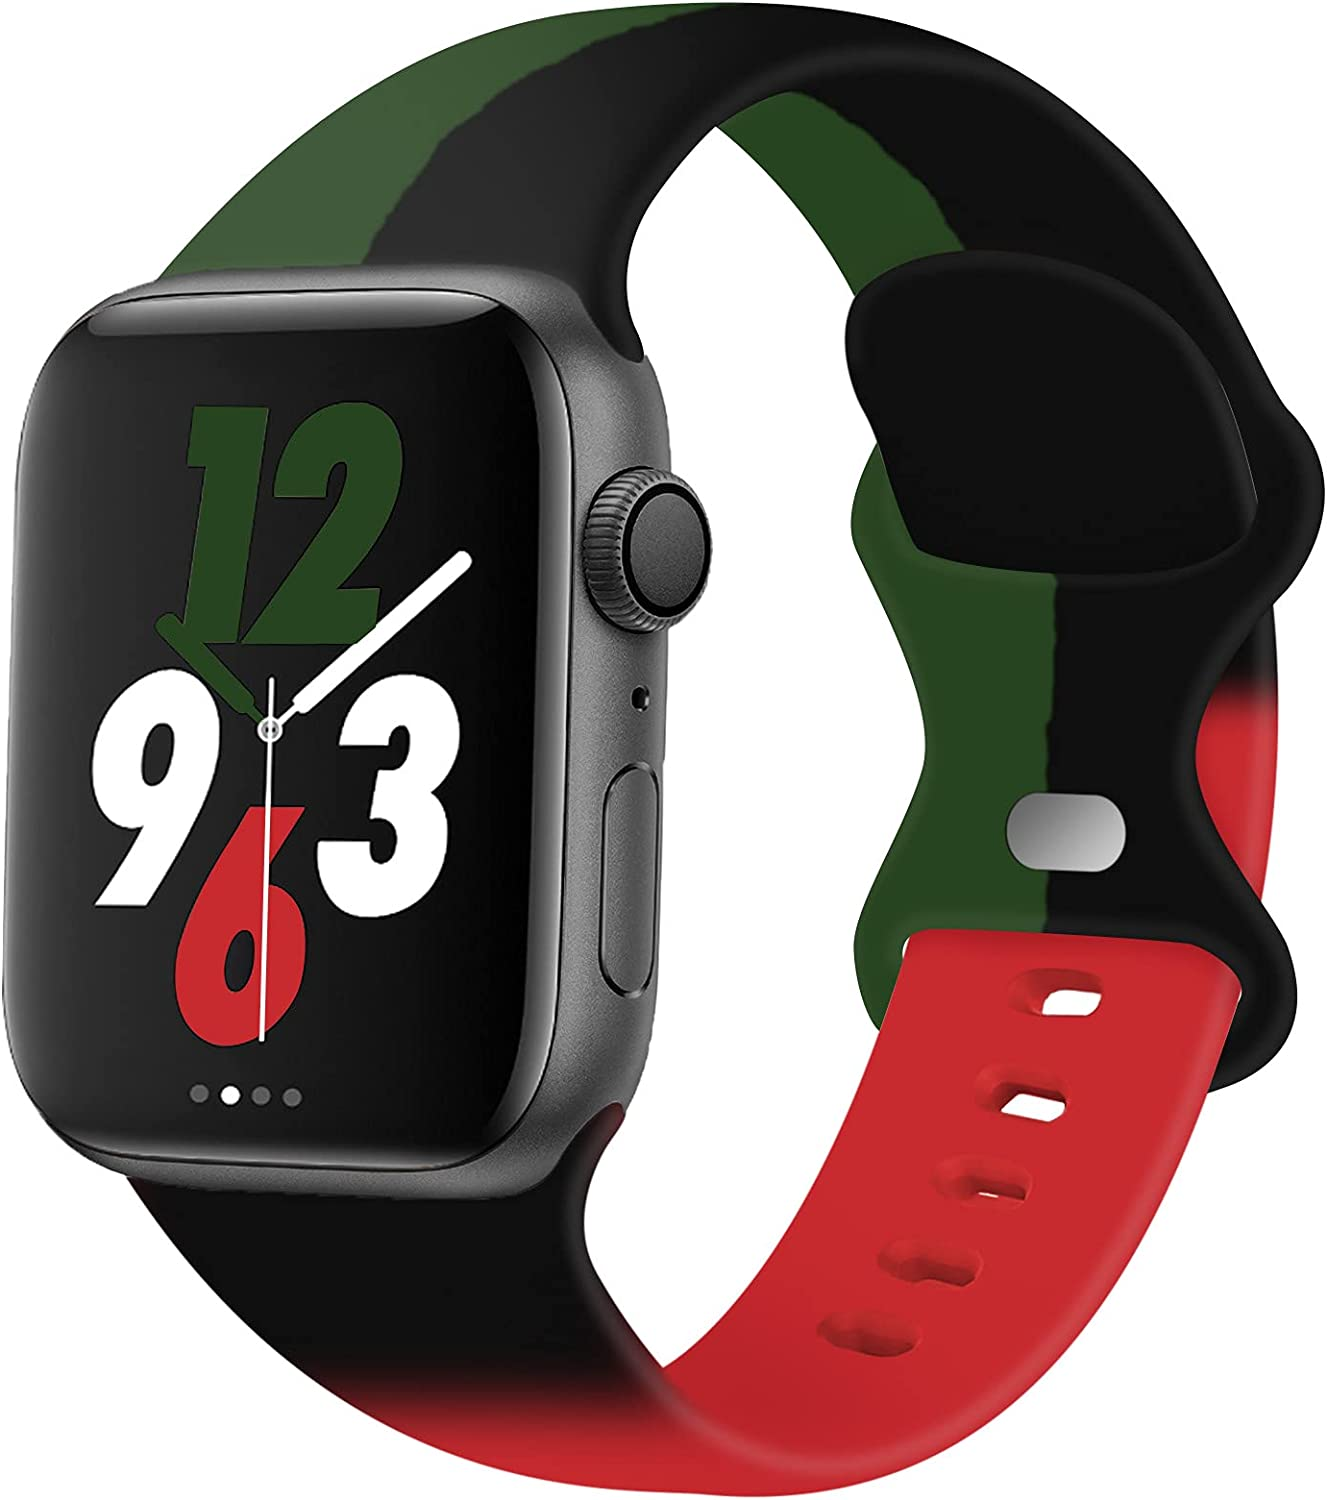 Acrbiutu Bands Compatible with Apple Watch 38mm 40mm 42mm 44mm, Replacement Soft Silicone Sport Strap for iWatch SE Series 6/5/4/3/2/1 Women Men, Mixed Black Green Red 38mm/40mm S/M